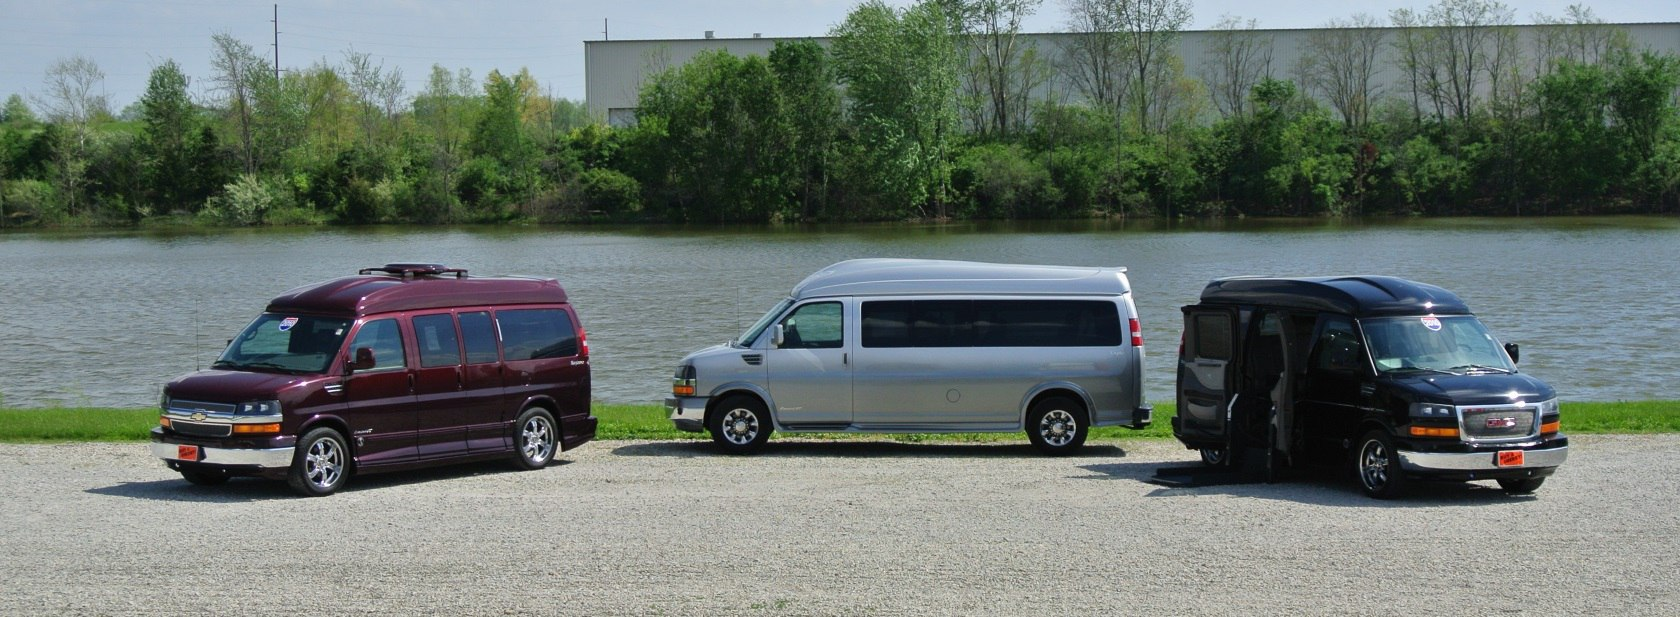 Explorer Conversion Vans For Sale